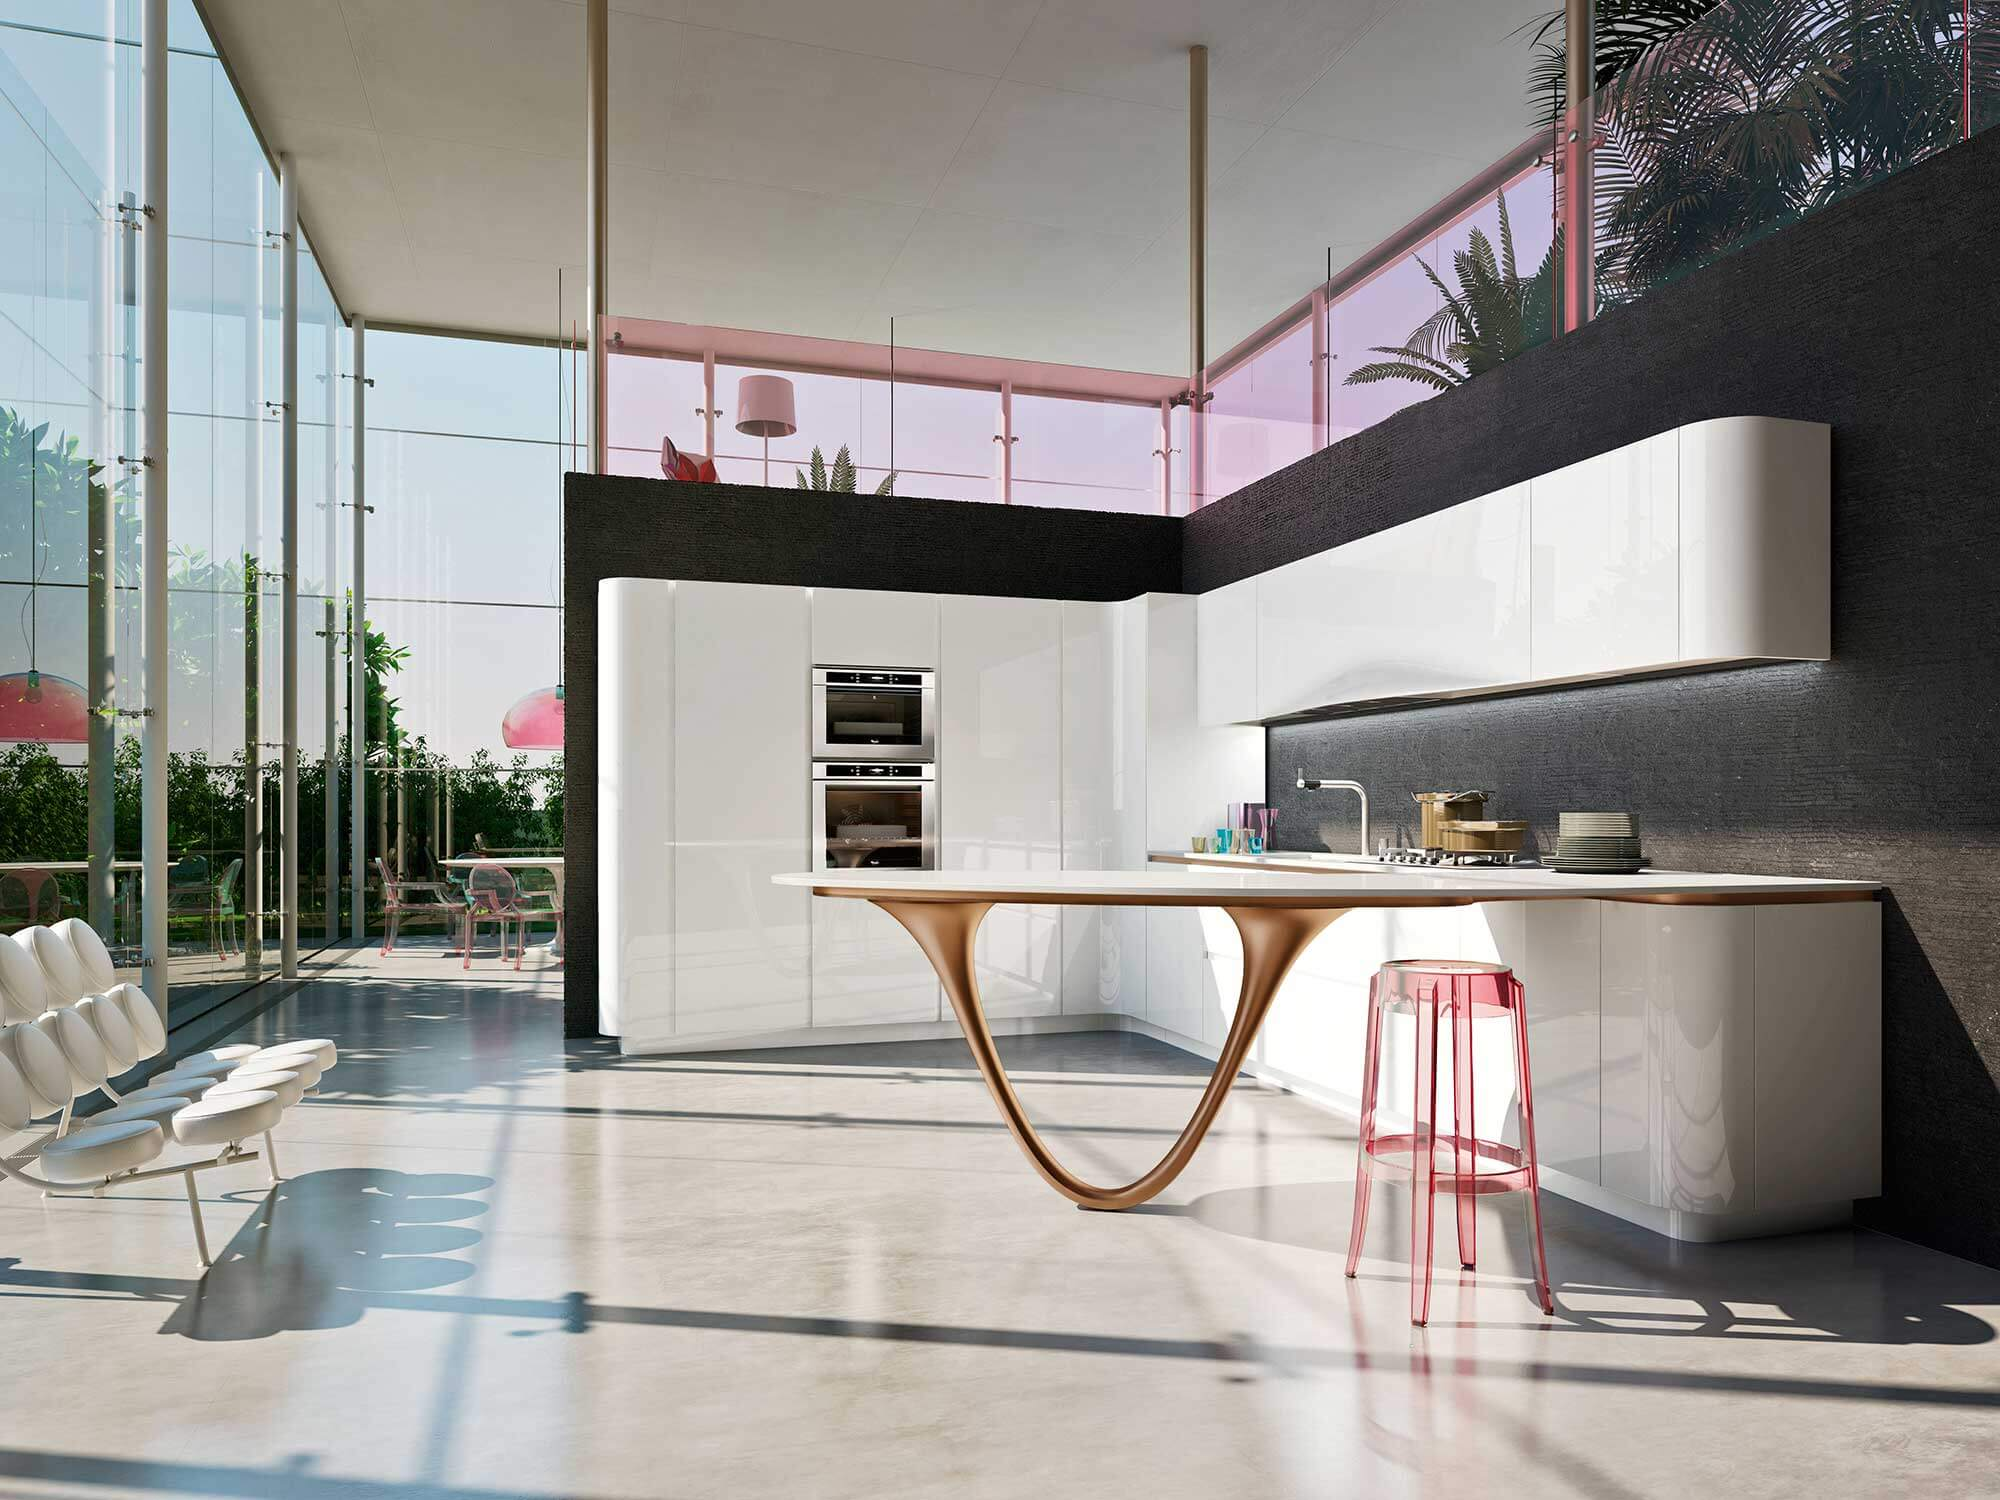 Modern kitchen design with stylized table